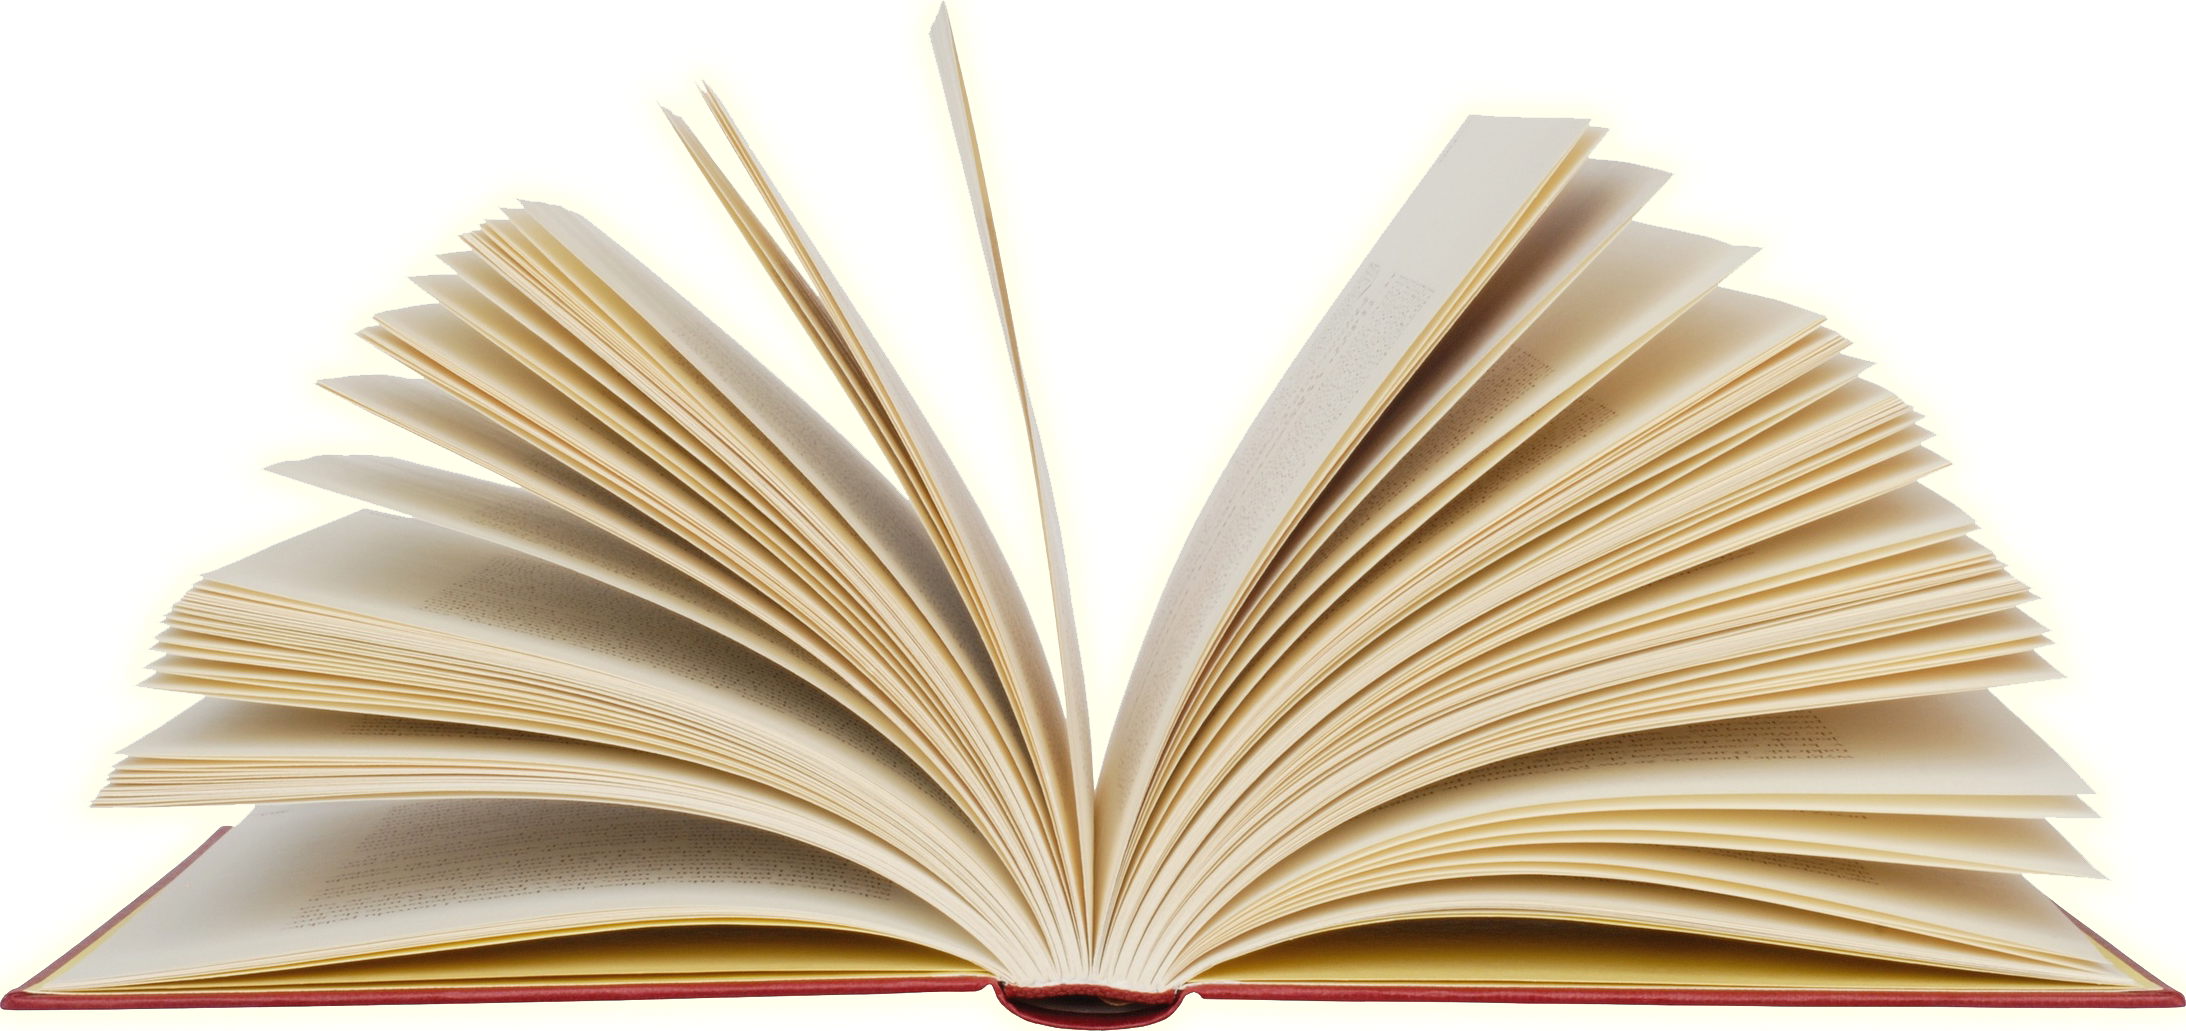 open book PNG image - Book HD PNG